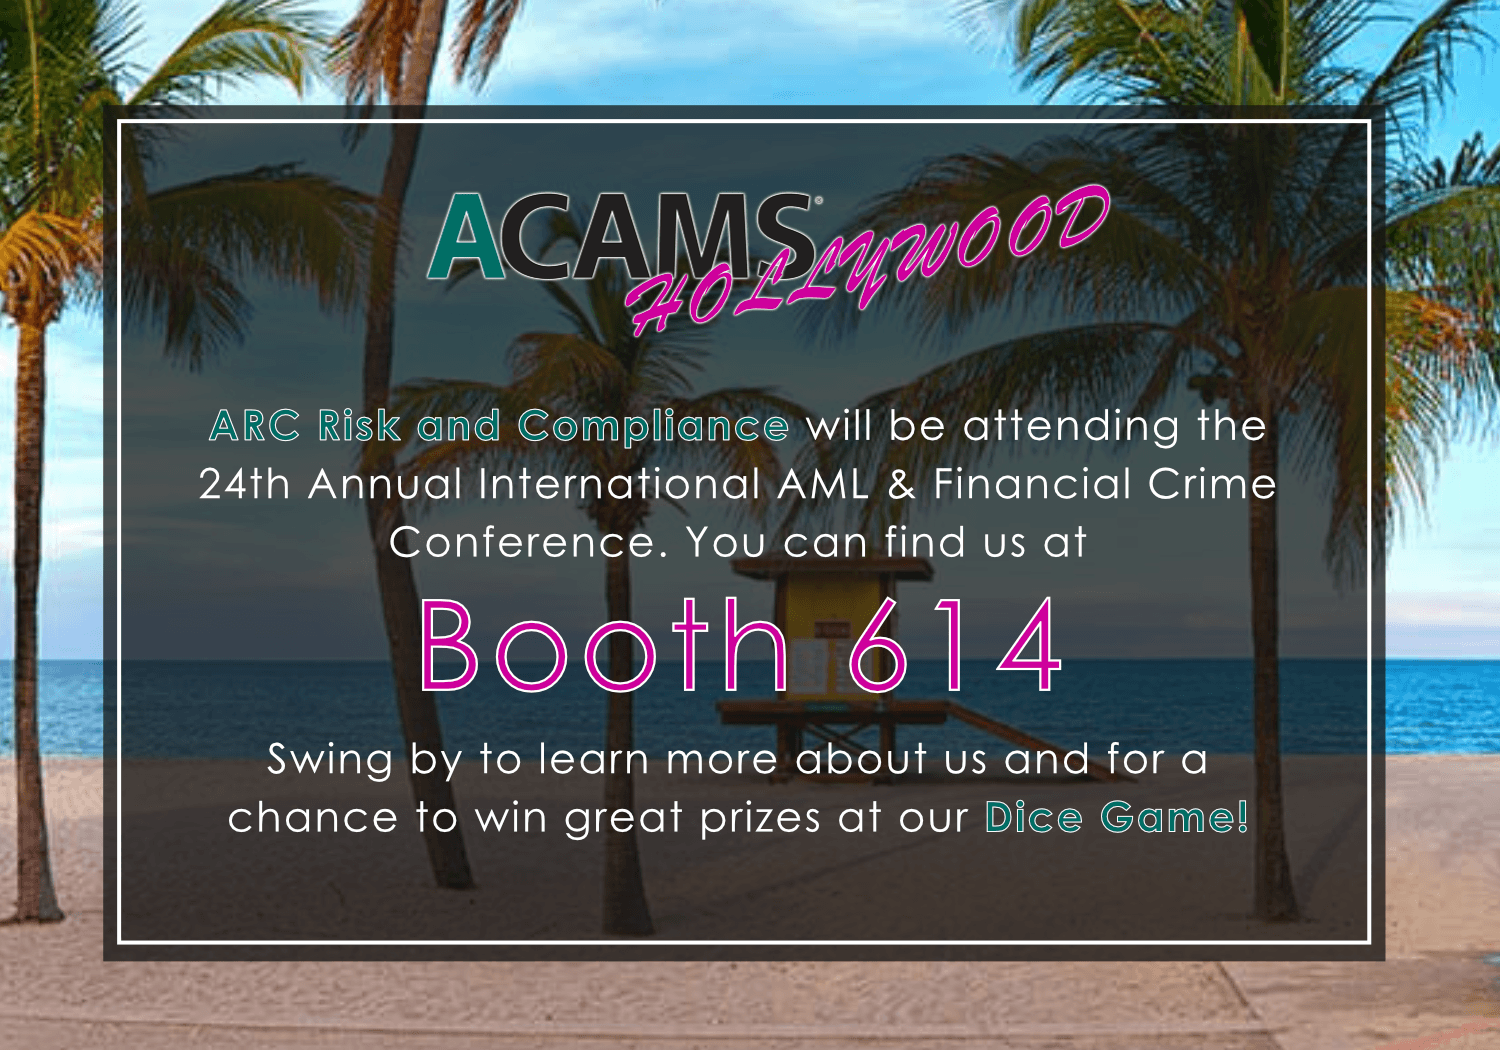 ACAMS 24th Annual International AML & Financial Crime